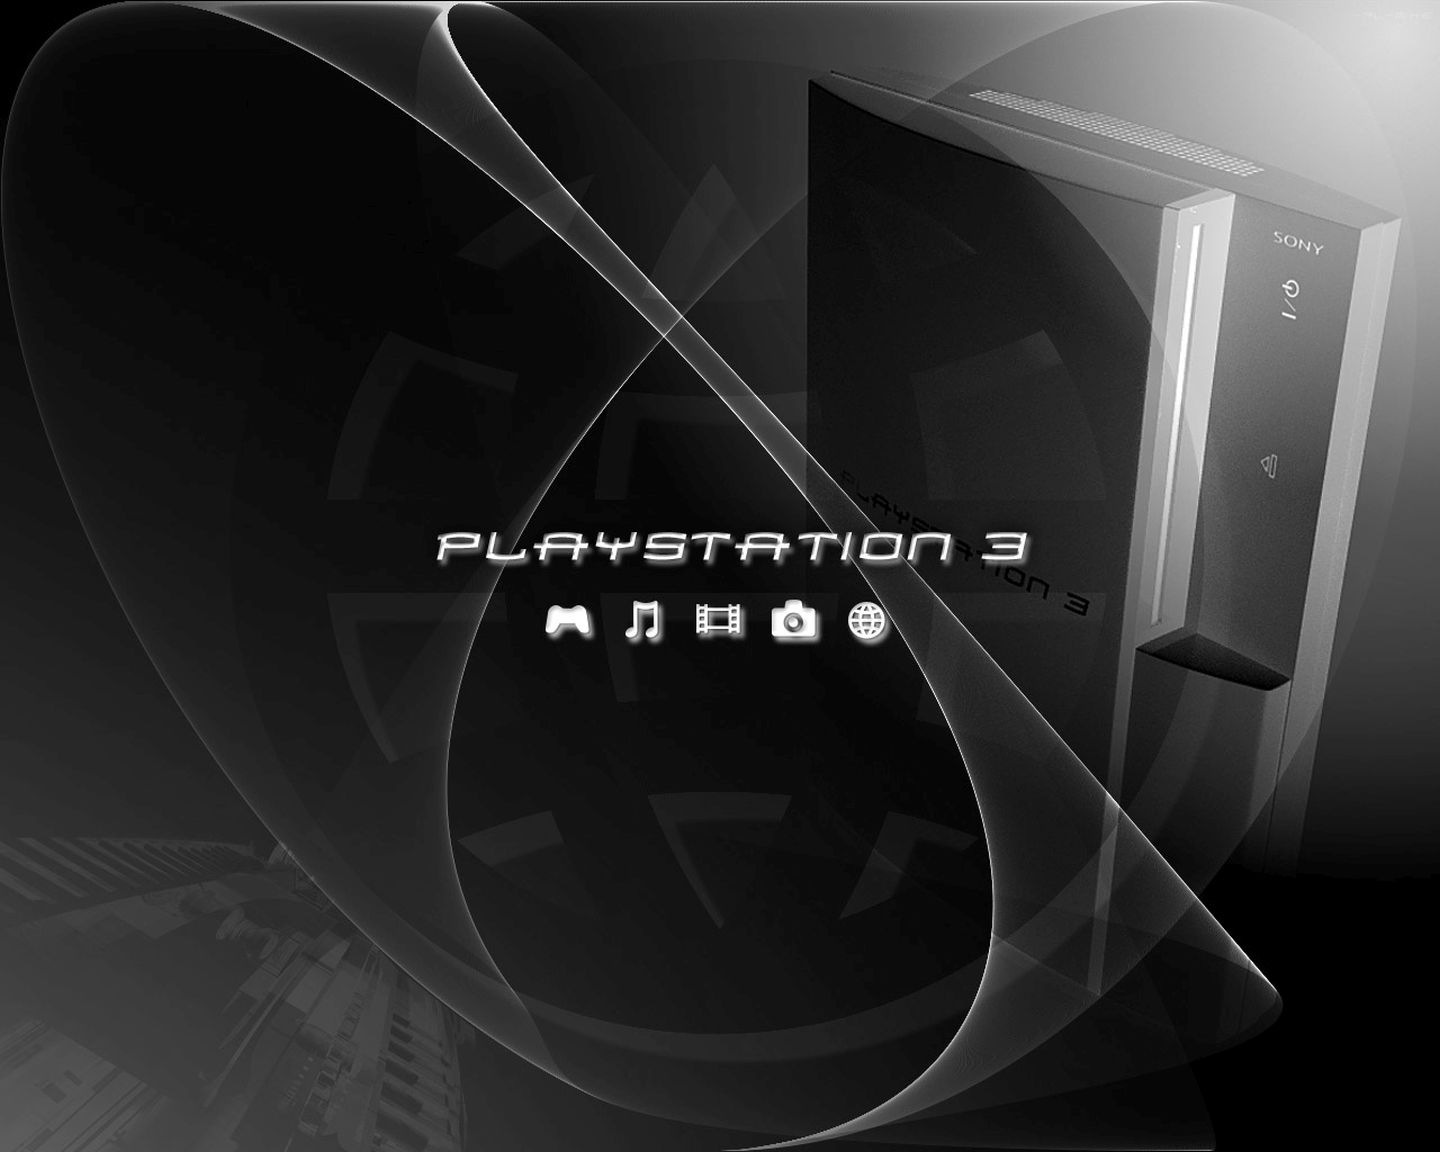 download ps3 update 4.80